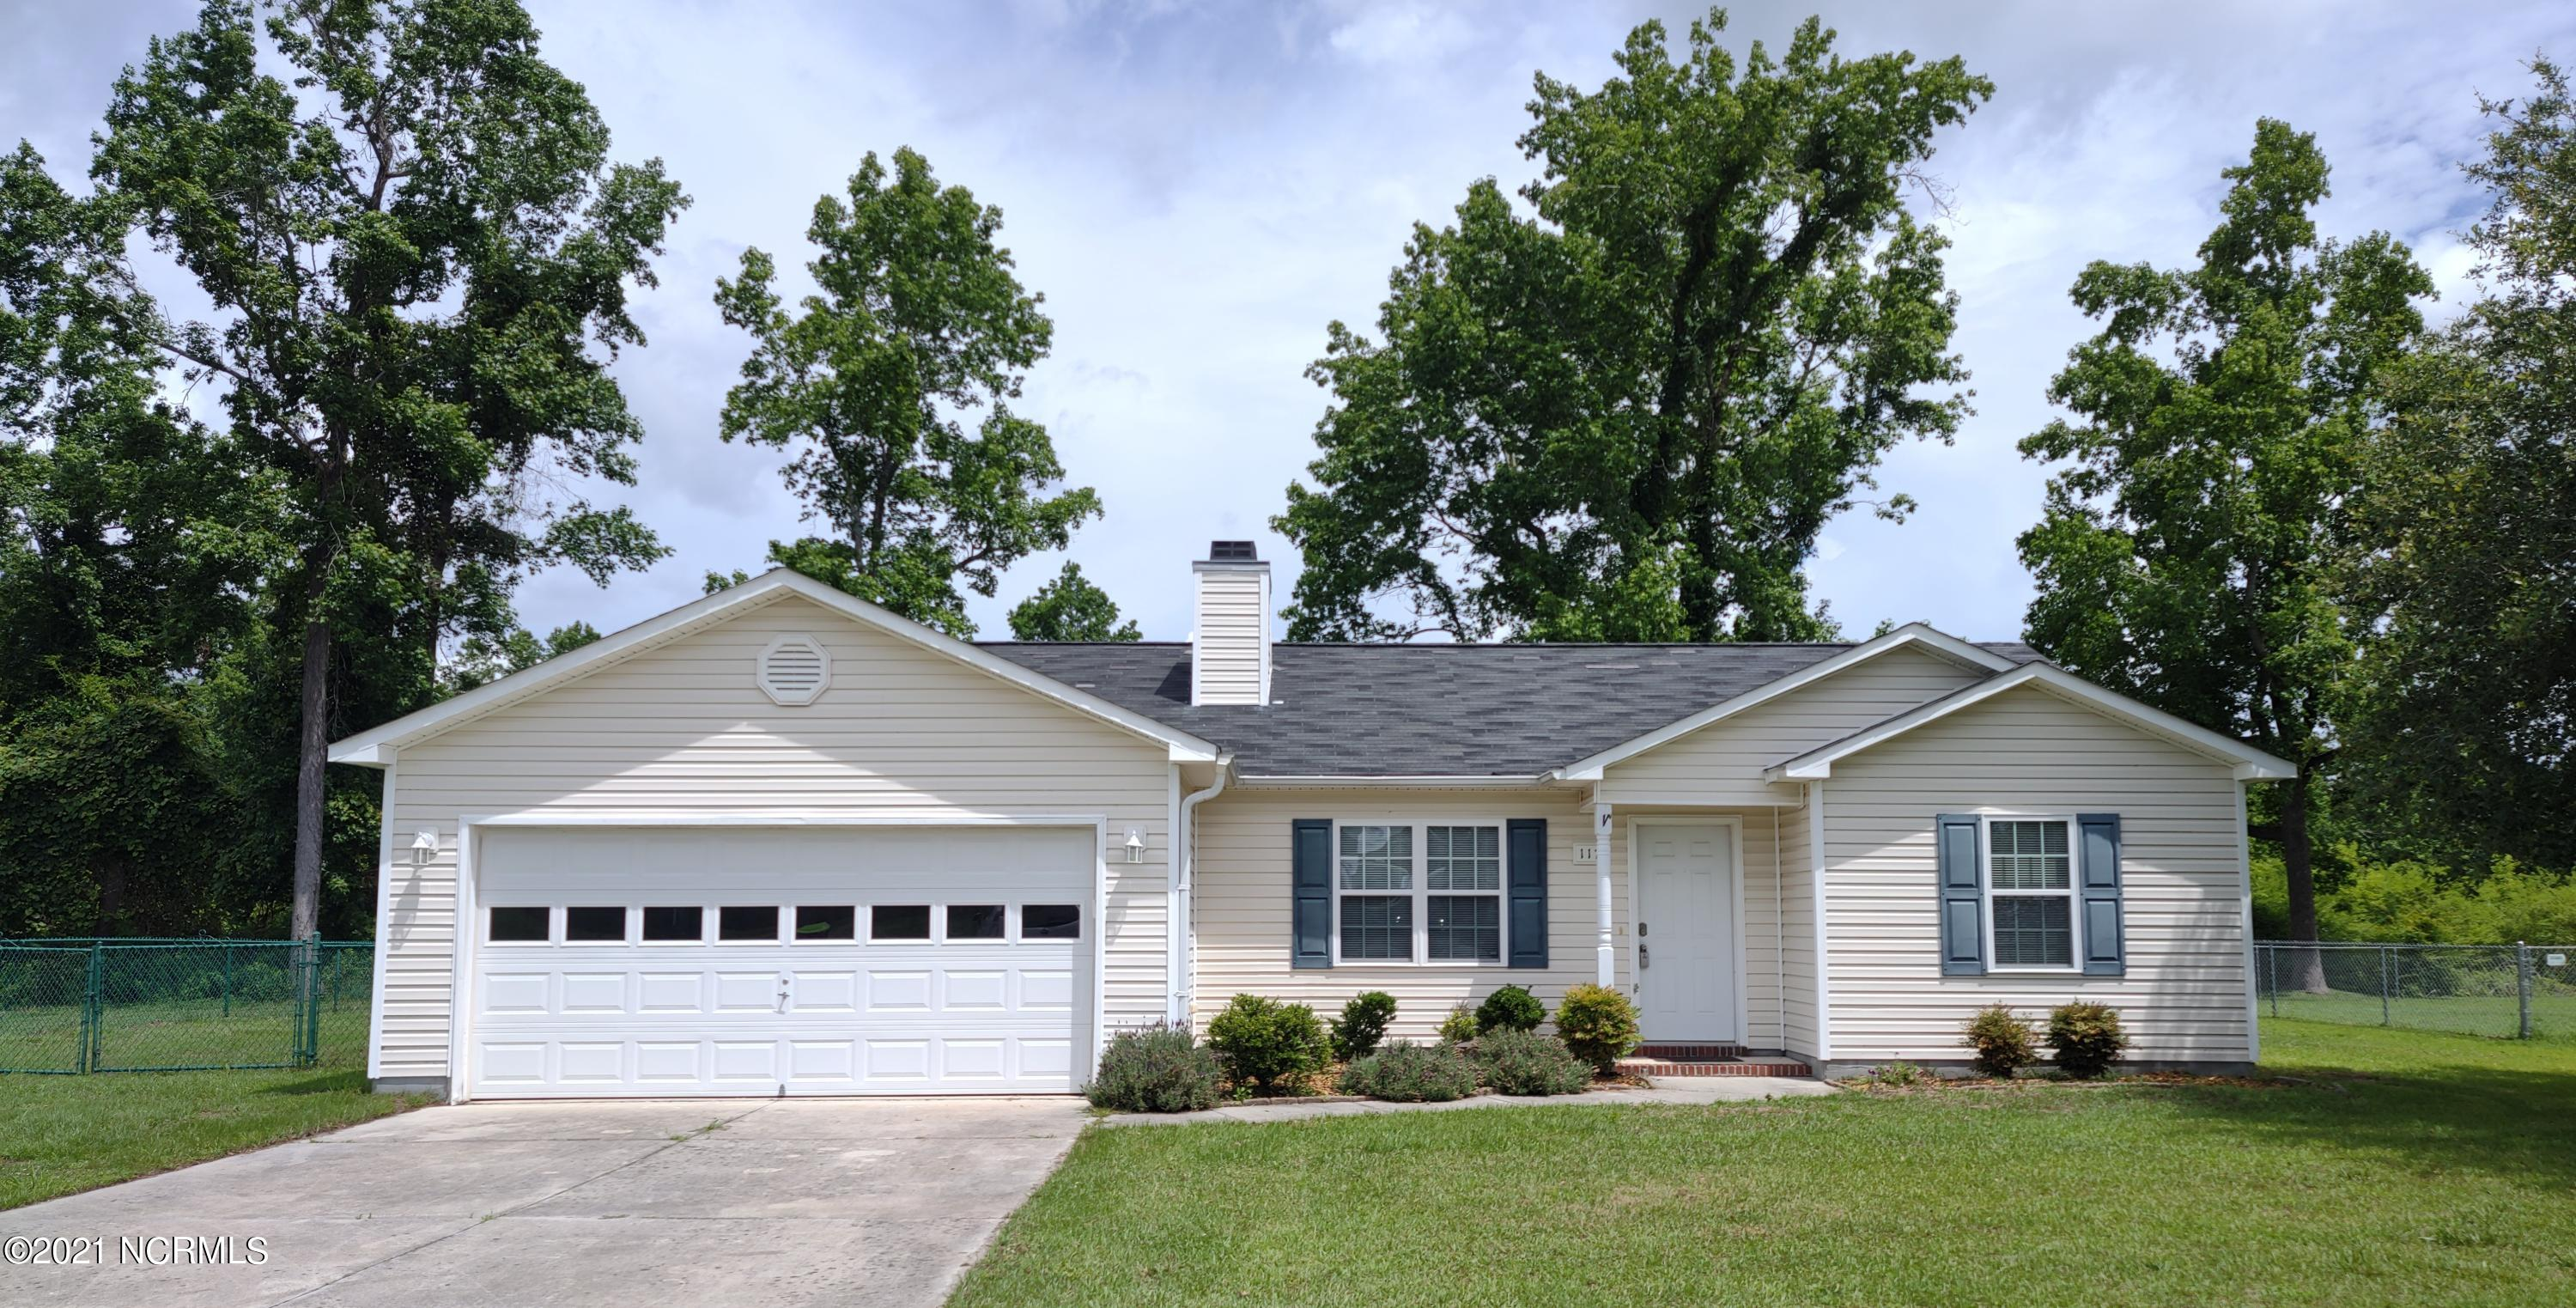 Country living in a one story 3 bedroom, 2 bathroom home near Camp Lejeune and Jacksonville, NC. Vaulted ceiling family room with wood burning fireplace for cool nights. Ceiling fans in living room and master bedroom for warm summer days. Master bedroom with 2 walk-in closets. Master en-suite bathroom. Nice 2 car garage for cars, bikes and sporting equipment. Fenced in back yard with plenty of room for a firepit or kids and dogs to play.